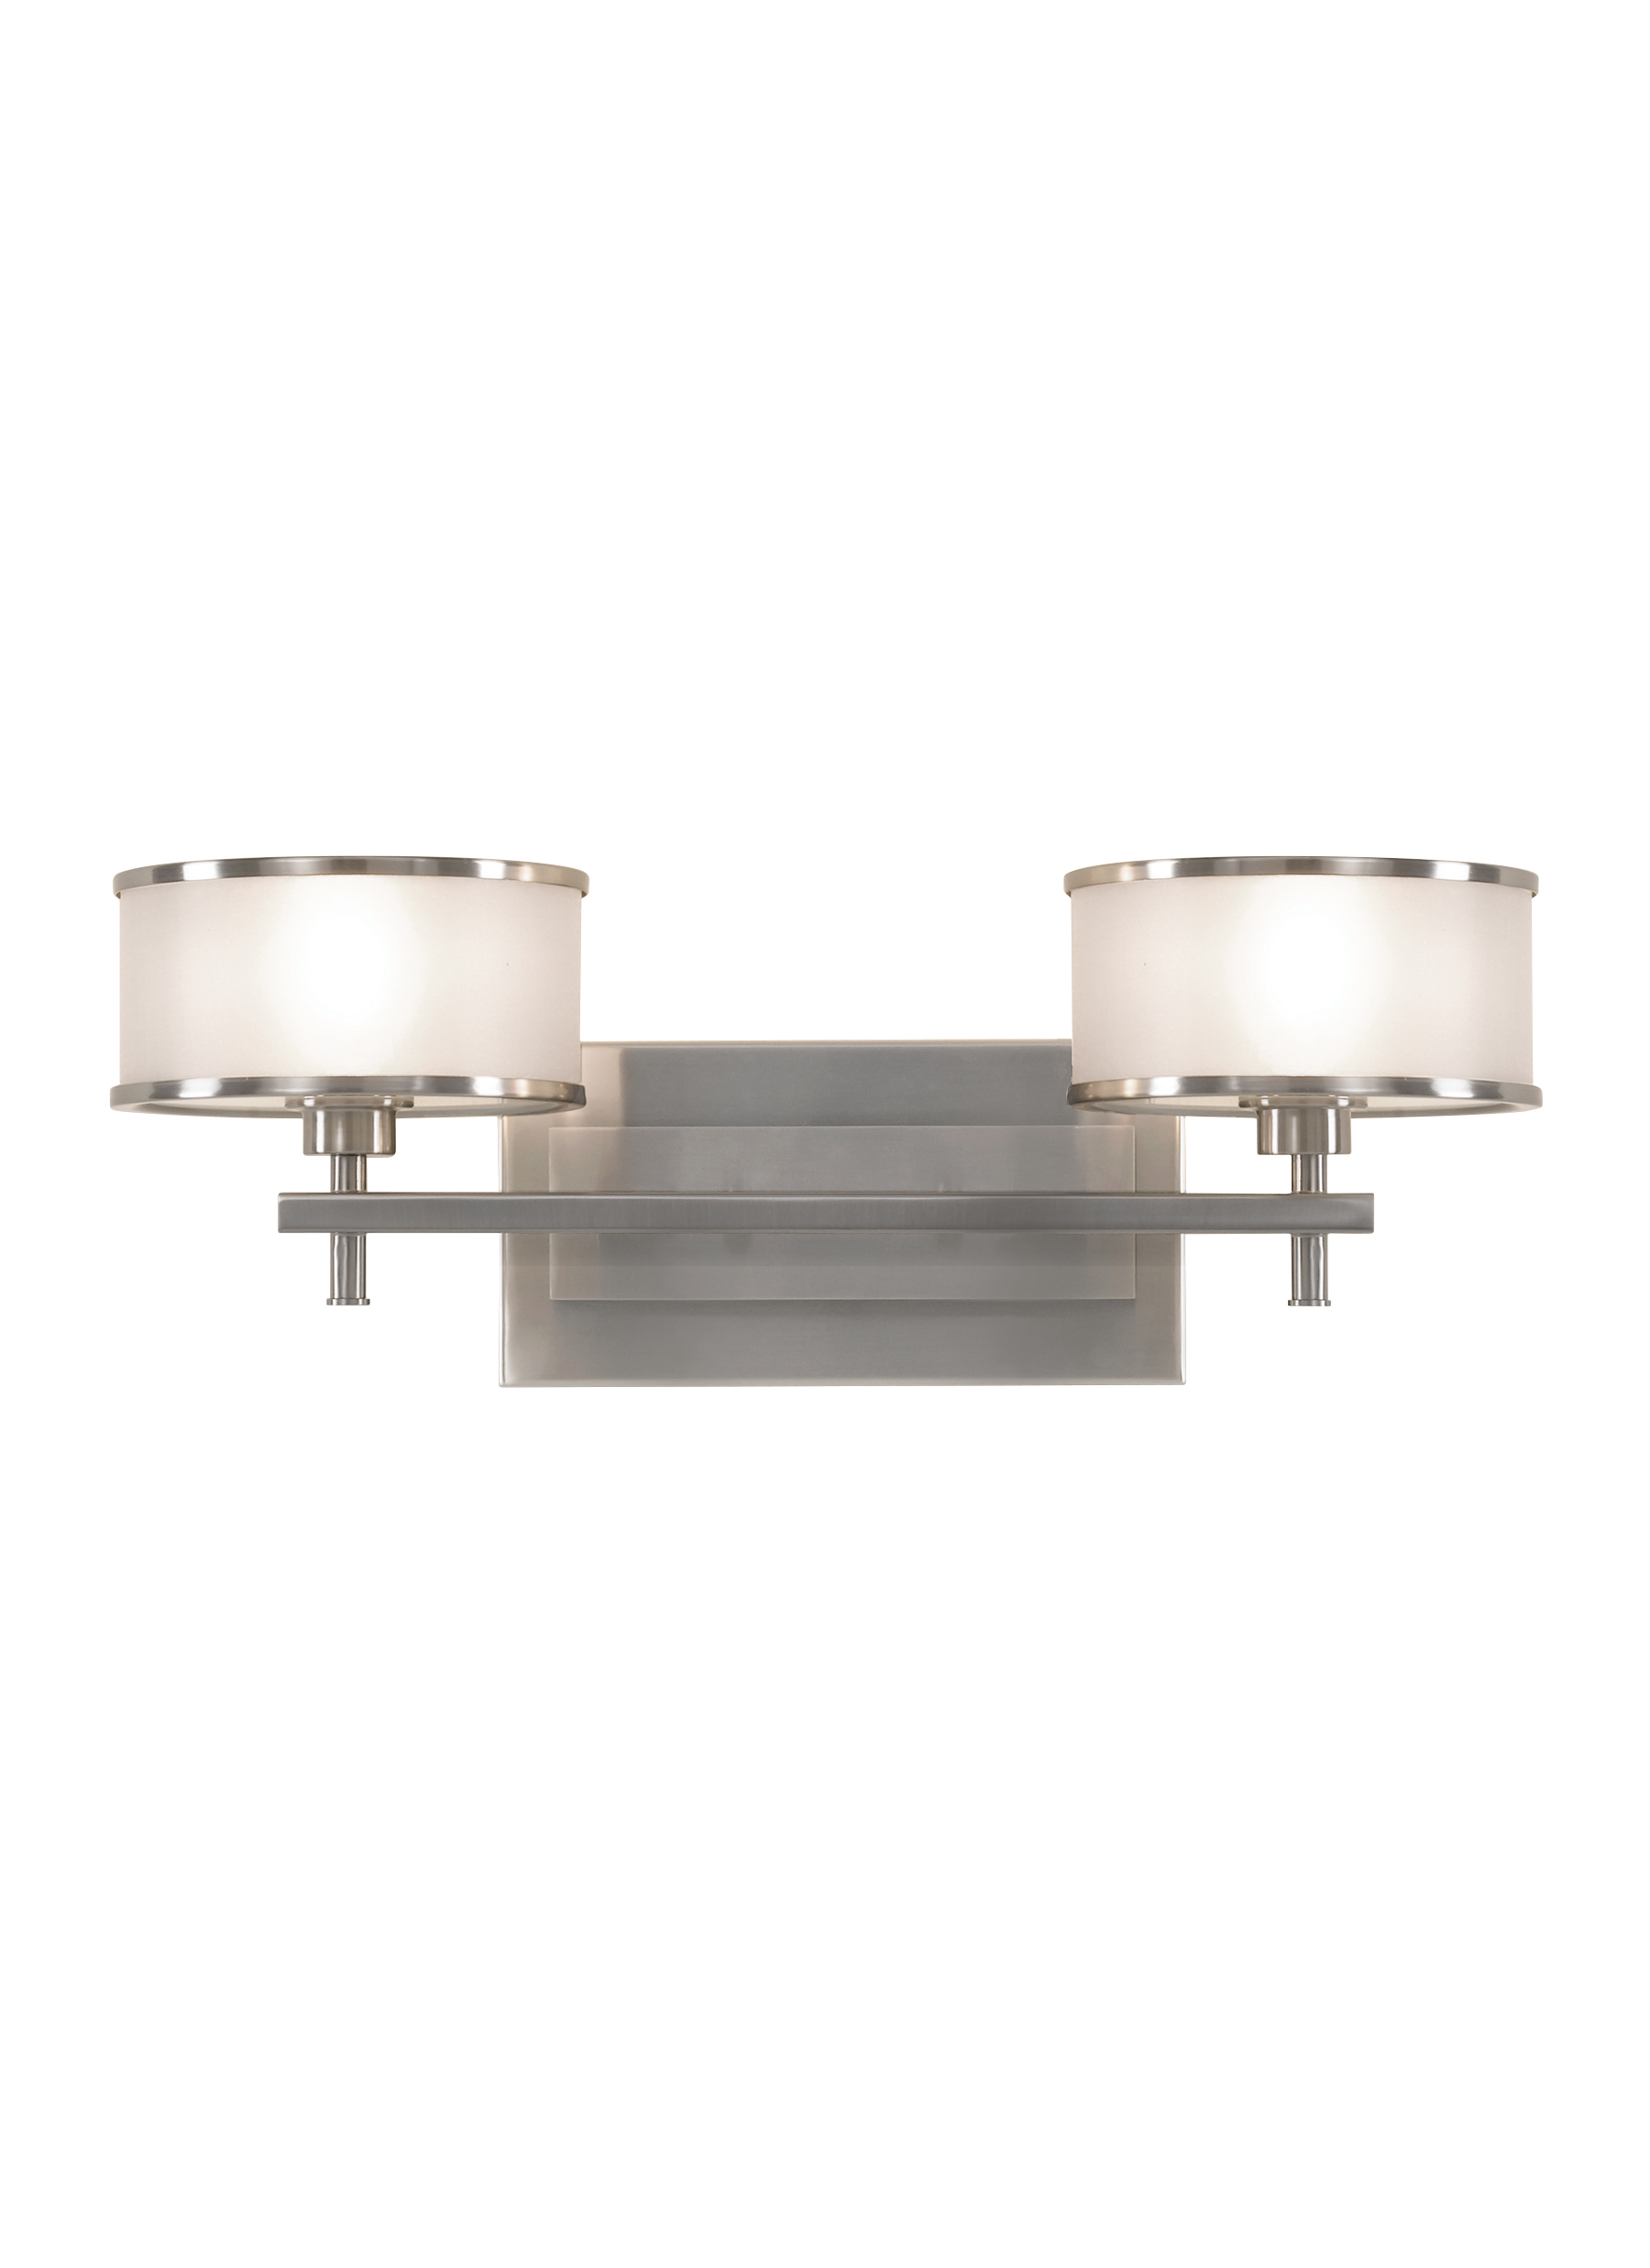 VS13702-BS,2 - Light Vanity Fixture,Brushed Steel